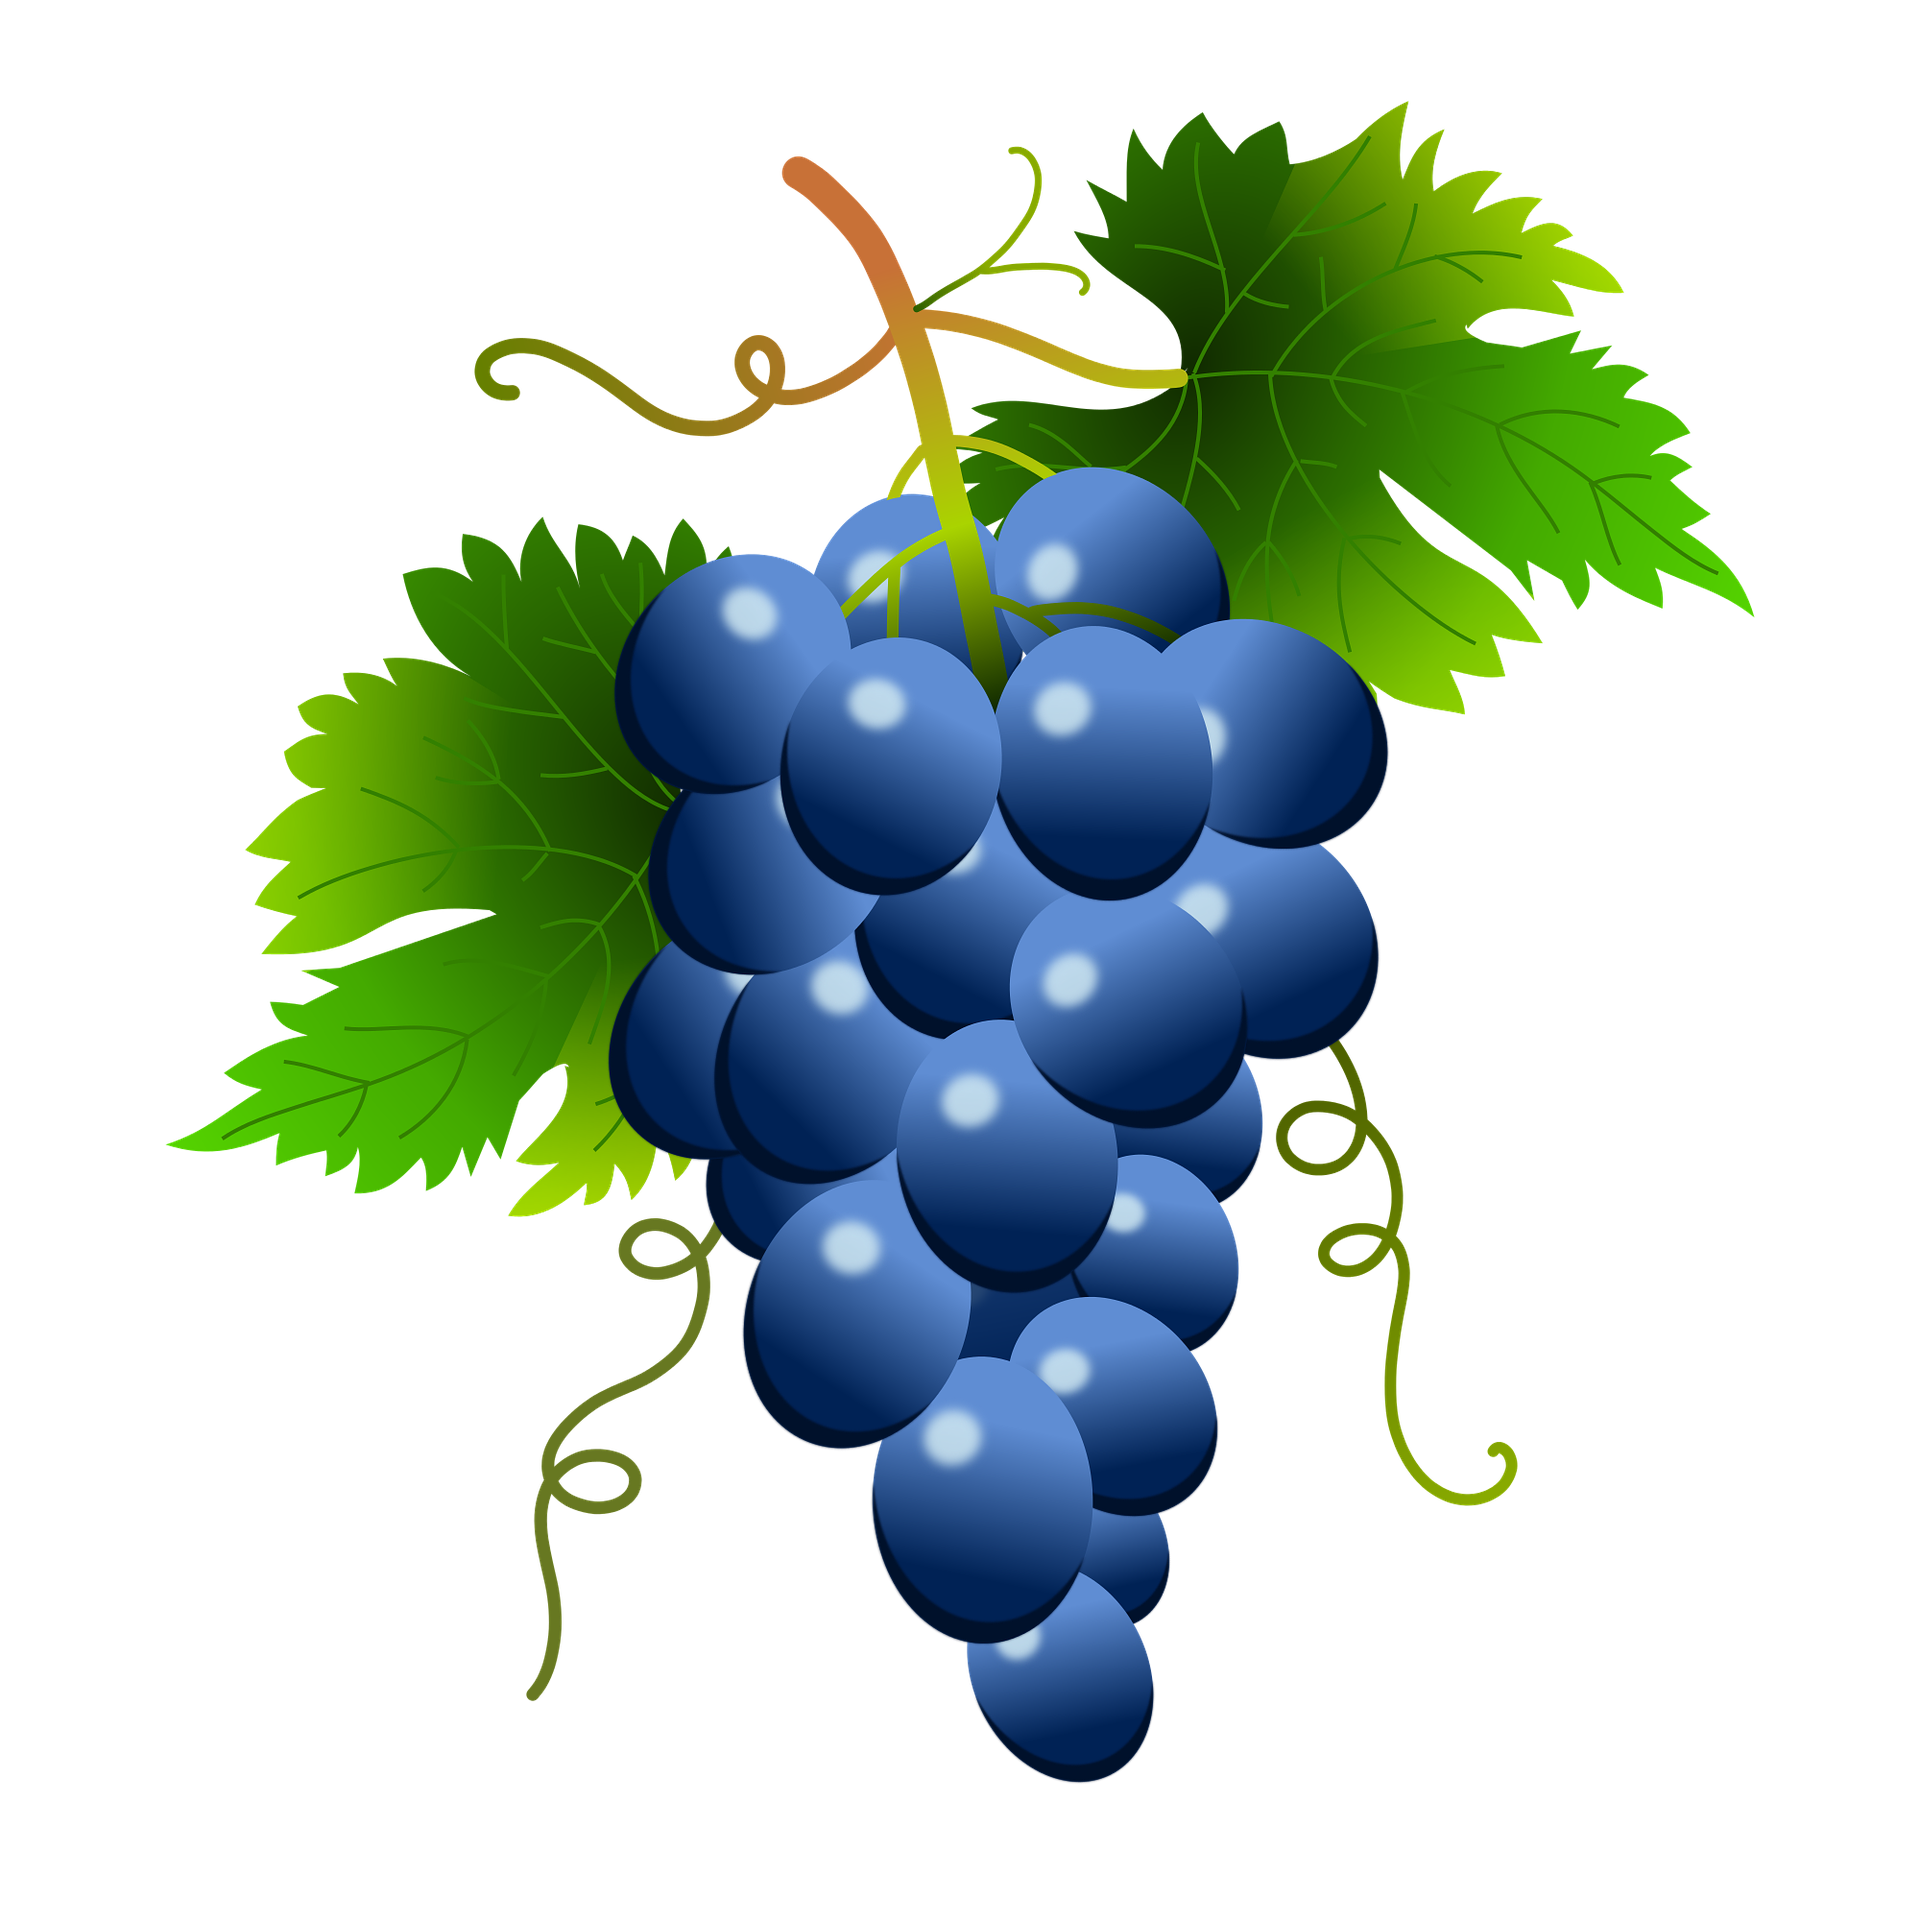 picture freeuse download Free on dumielauxepices net. Grapes clipart blue grape